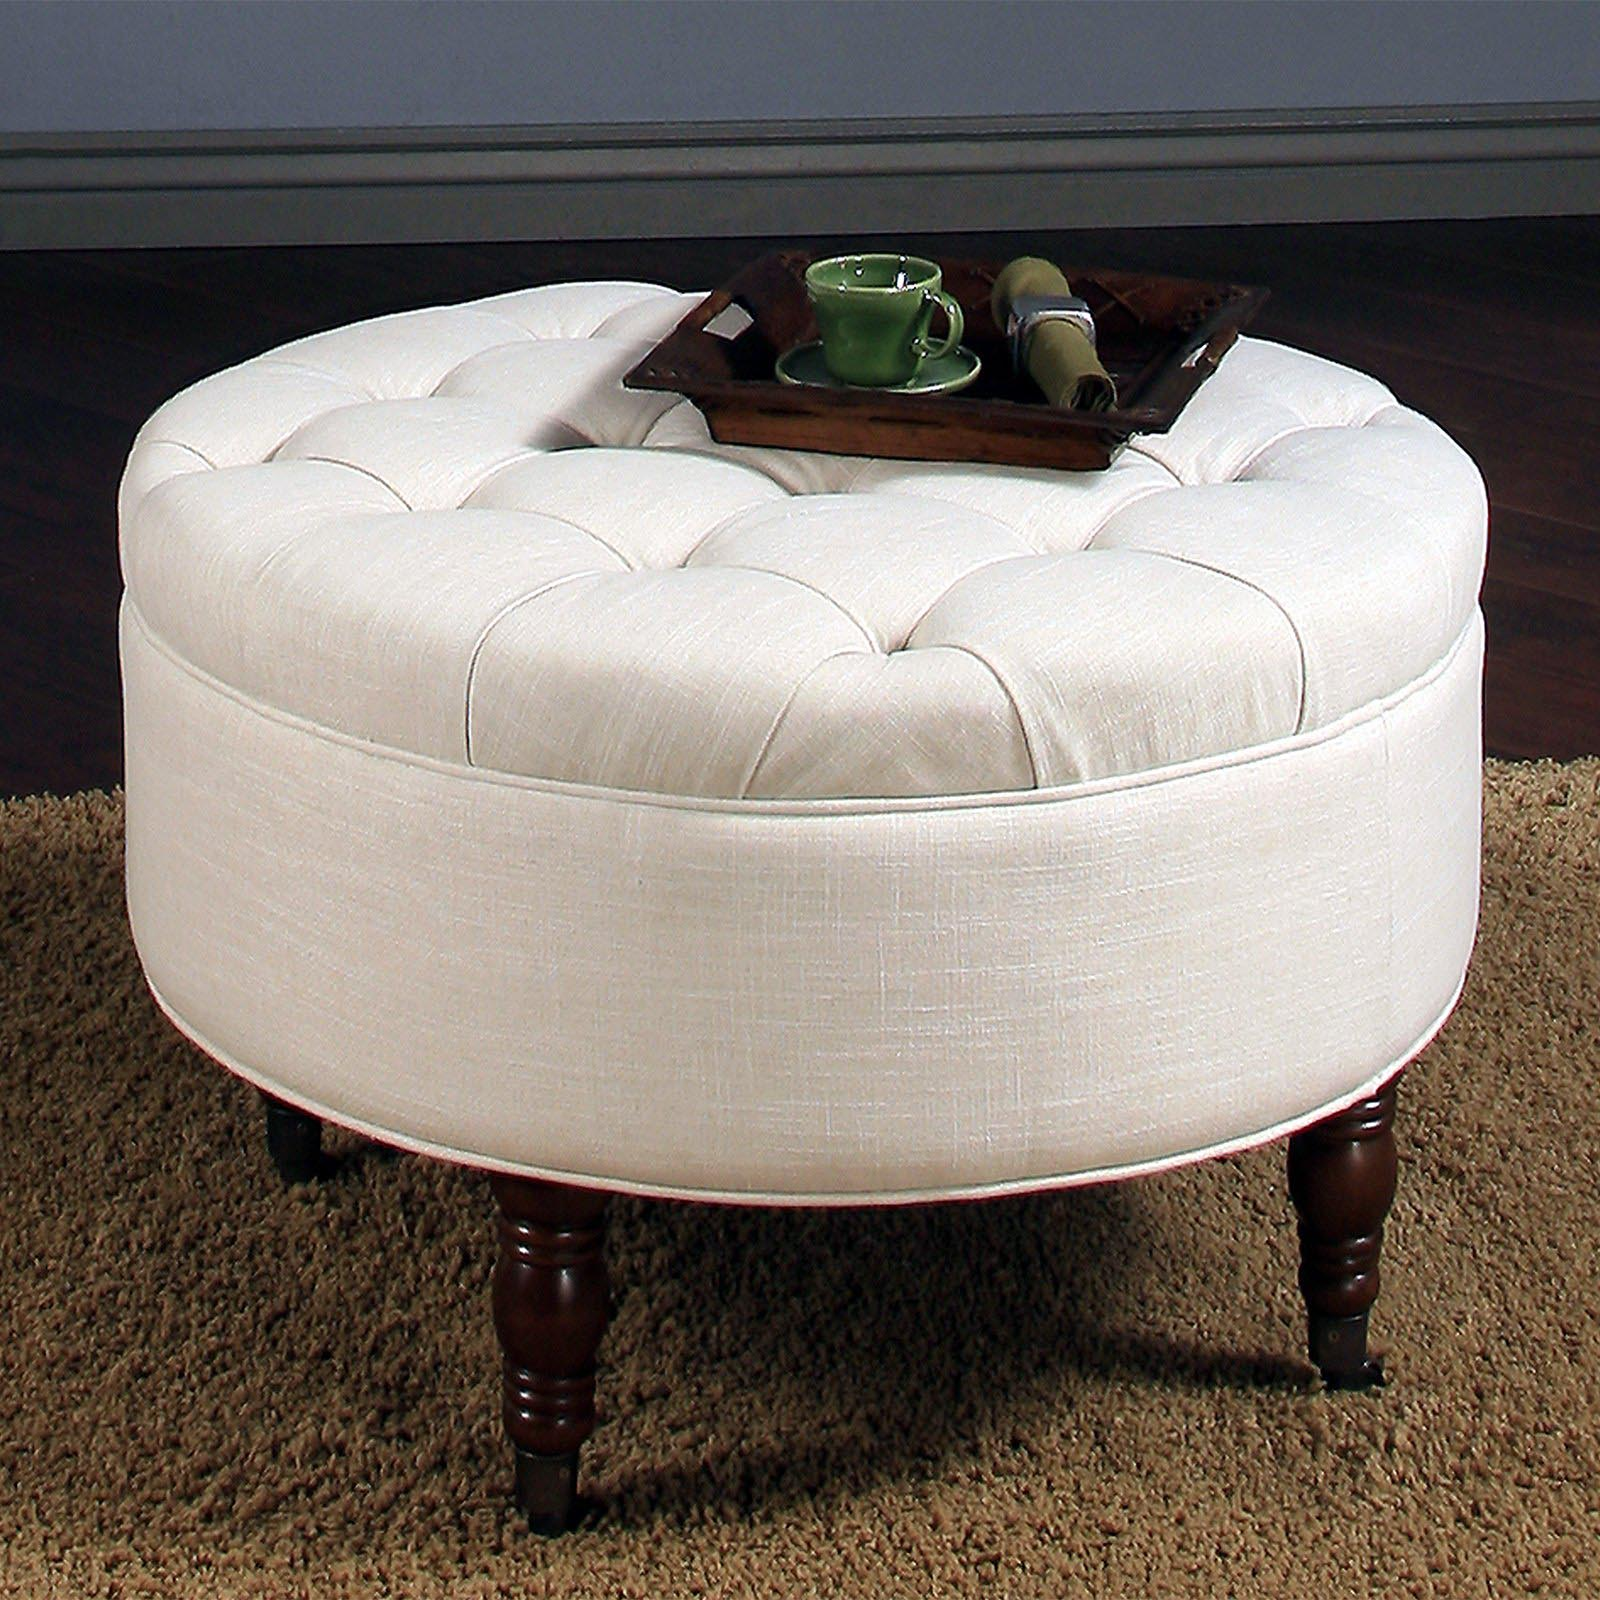 Ottoman Coffee Table With Sliding Wood Top: Significant Element Of The